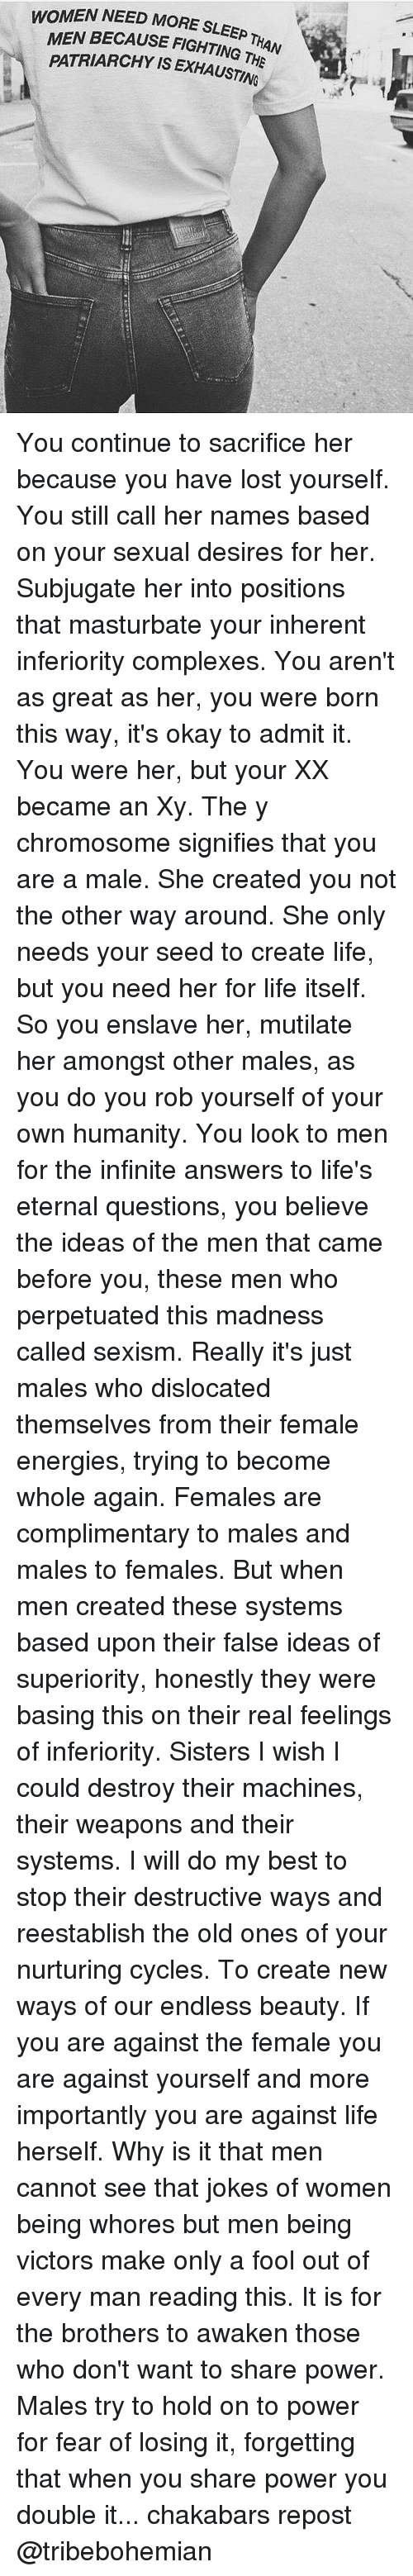 born this way: WOMEN NEED MORE SLEEP  E SLEEP THAN  MEN BECAUSE FIGHTING T  ING THE  H  PATRIARCHY IS EXHAUSTING ari4P You continue to sacrifice her because you have lost yourself. You still call her names based on your sexual desires for her. Subjugate her into positions that masturbate your inherent inferiority complexes. You aren't as great as her, you were born this way, it's okay to admit it. You were her, but your XX became an Xy. The y chromosome signifies that you are a male. She created you not the other way around. She only needs your seed to create life, but you need her for life itself. So you enslave her, mutilate her amongst other males, as you do you rob yourself of your own humanity. You look to men for the infinite answers to life's eternal questions, you believe the ideas of the men that came before you, these men who perpetuated this madness called sexism. Really it's just males who dislocated themselves from their female energies, trying to become whole again. Females are complimentary to males and males to females. But when men created these systems based upon their false ideas of superiority, honestly they were basing this on their real feelings of inferiority. Sisters I wish I could destroy their machines, their weapons and their systems. I will do my best to stop their destructive ways and reestablish the old ones of your nurturing cycles. To create new ways of our endless beauty. If you are against the female you are against yourself and more importantly you are against life herself. Why is it that men cannot see that jokes of women being whores but men being victors make only a fool out of every man reading this. It is for the brothers to awaken those who don't want to share power. Males try to hold on to power for fear of losing it, forgetting that when you share power you double it... chakabars repost @tribebohemian